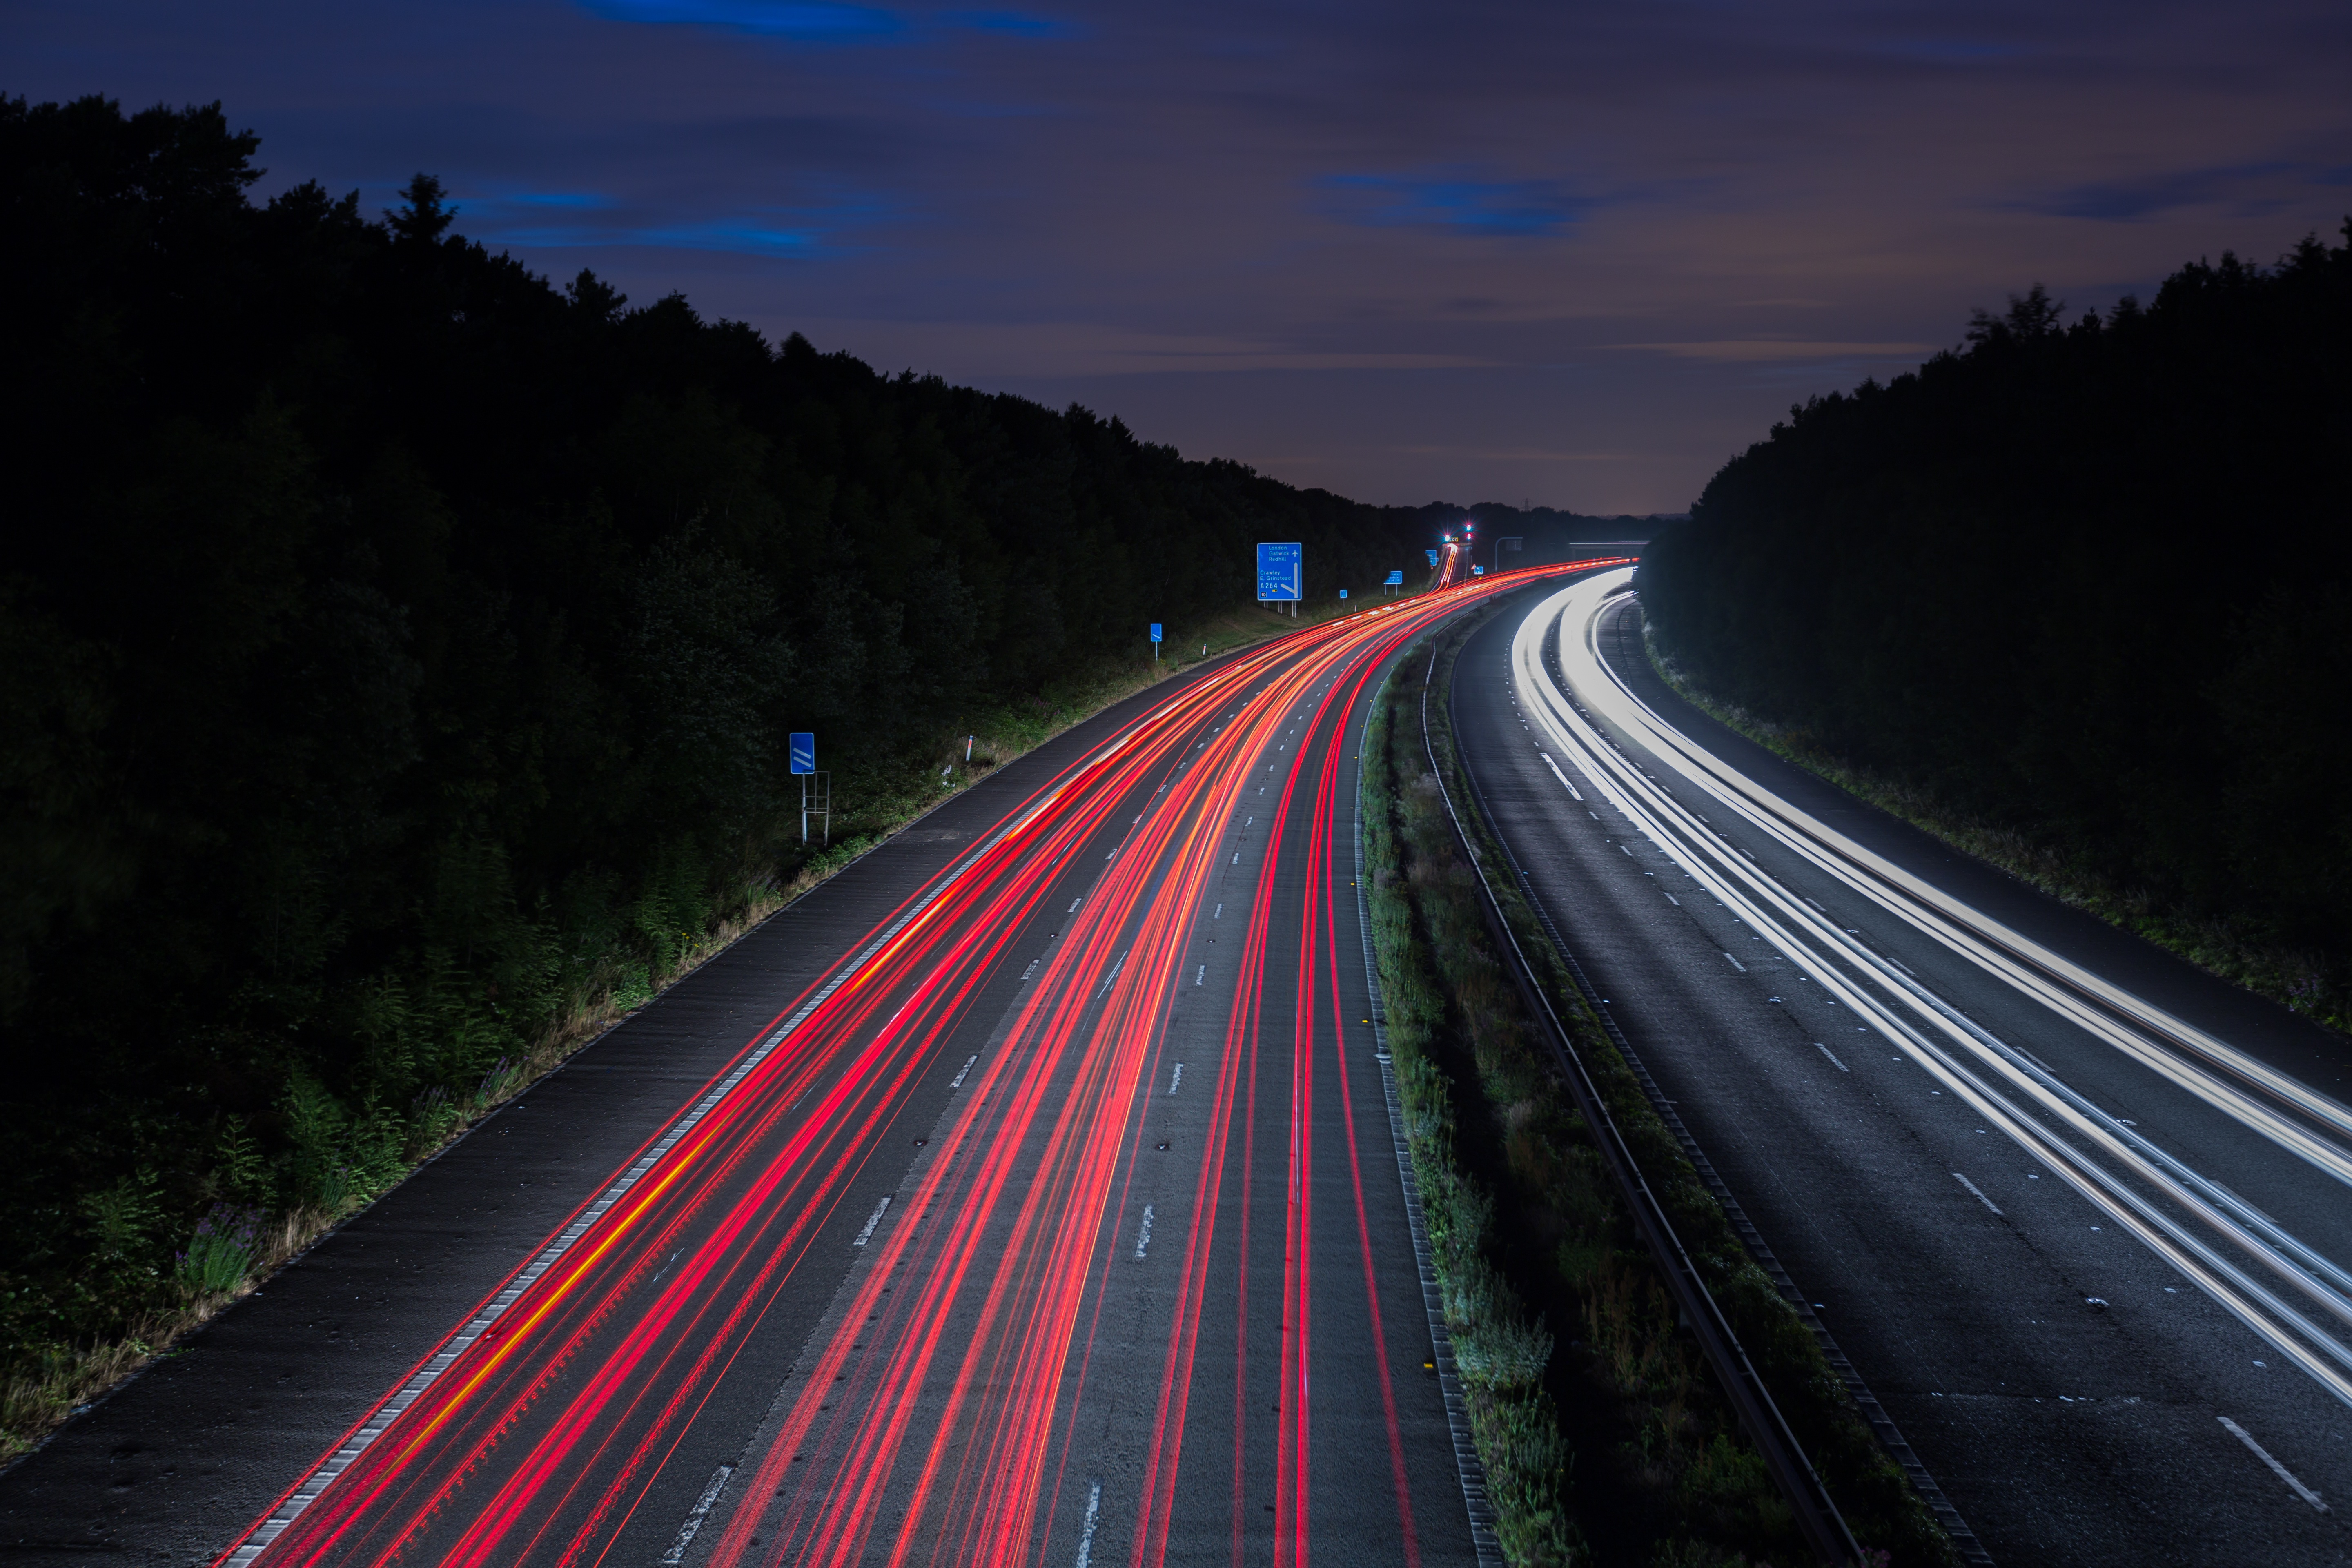 Highway, Traffic, Way, Road, Night, HQ Photo